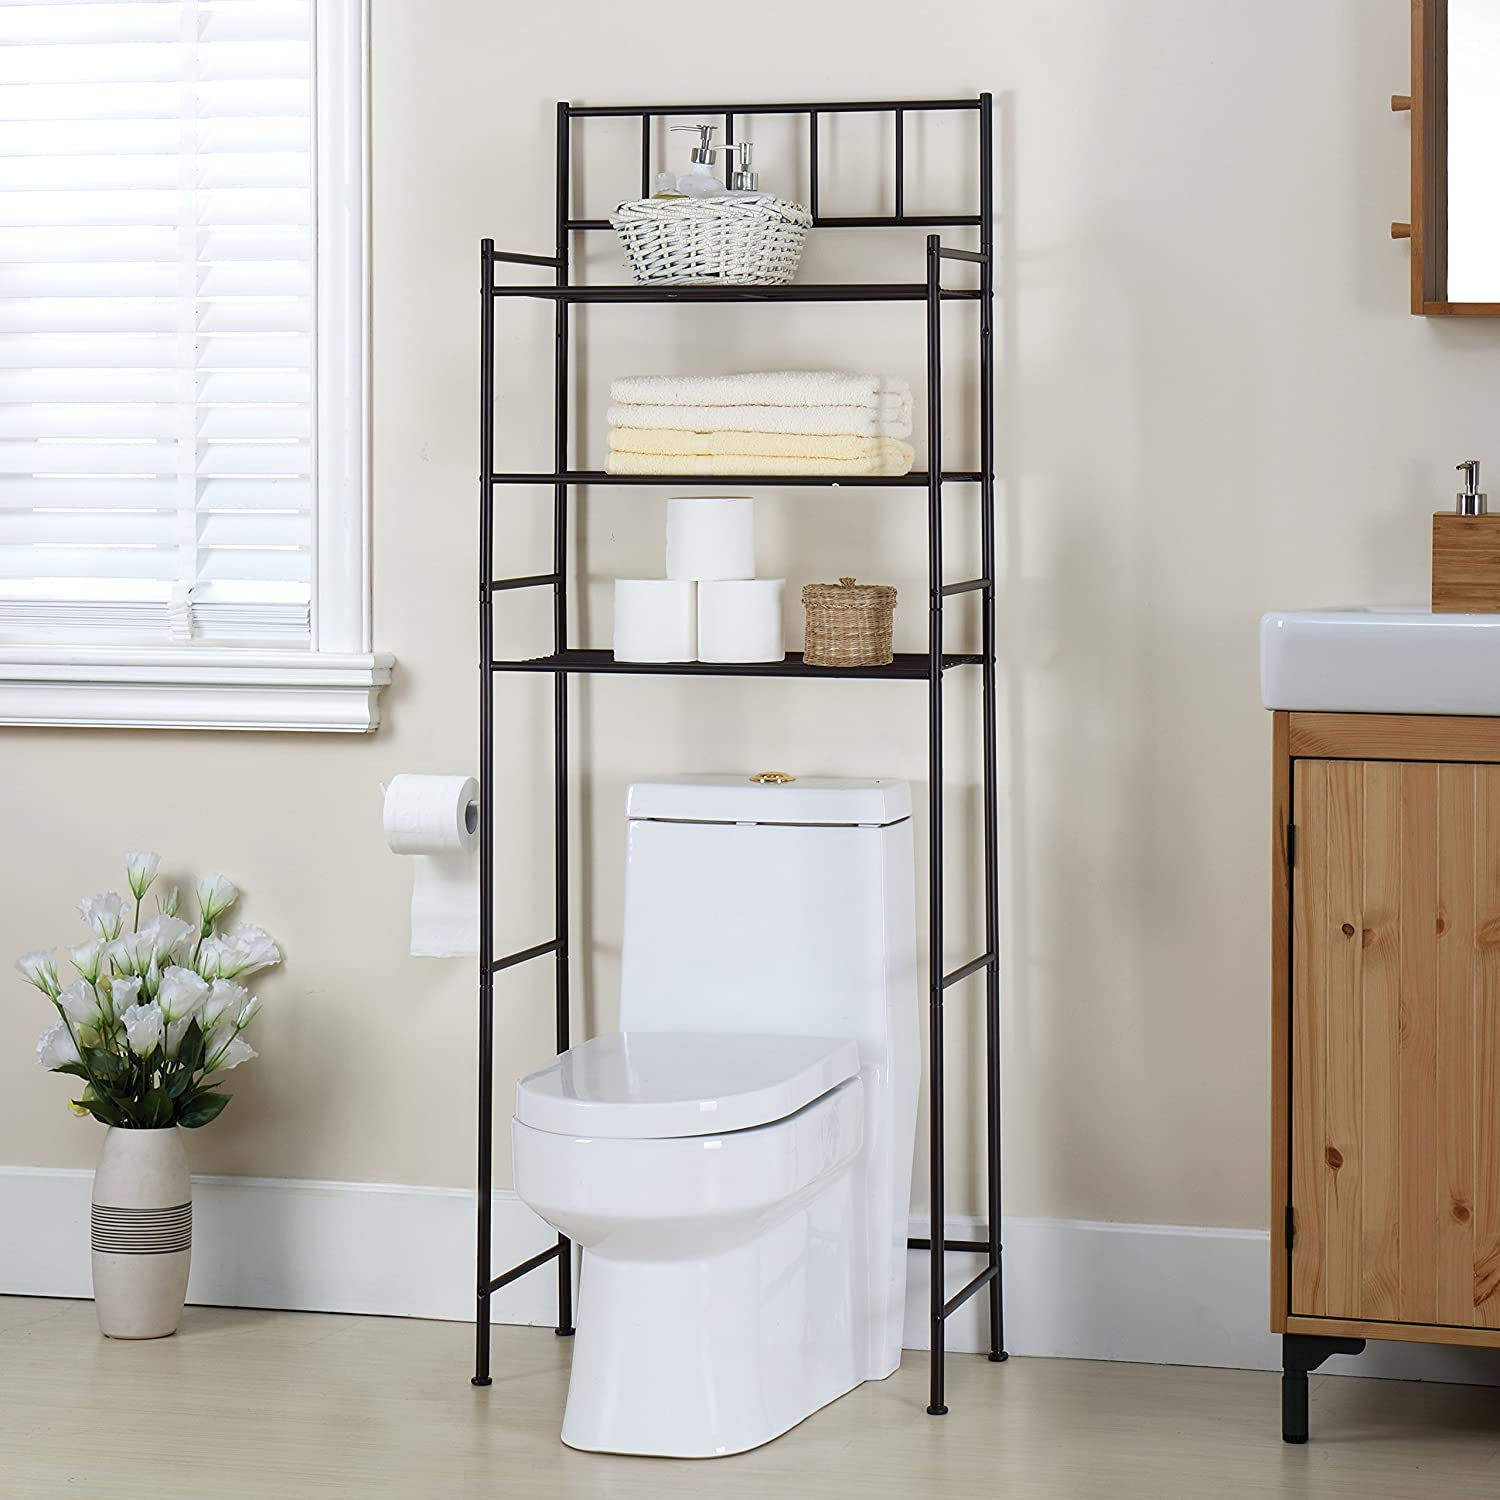 "Finnhomy 3 Shelf Bathroom Space Saver Over The Toilet Rack Bathroom Corner Stand Storage Organizer Accessories Bathroom Cabinet Tower Shelf with ORB Finish 23.5"" W x 10.5"" D x 64.5"" H"